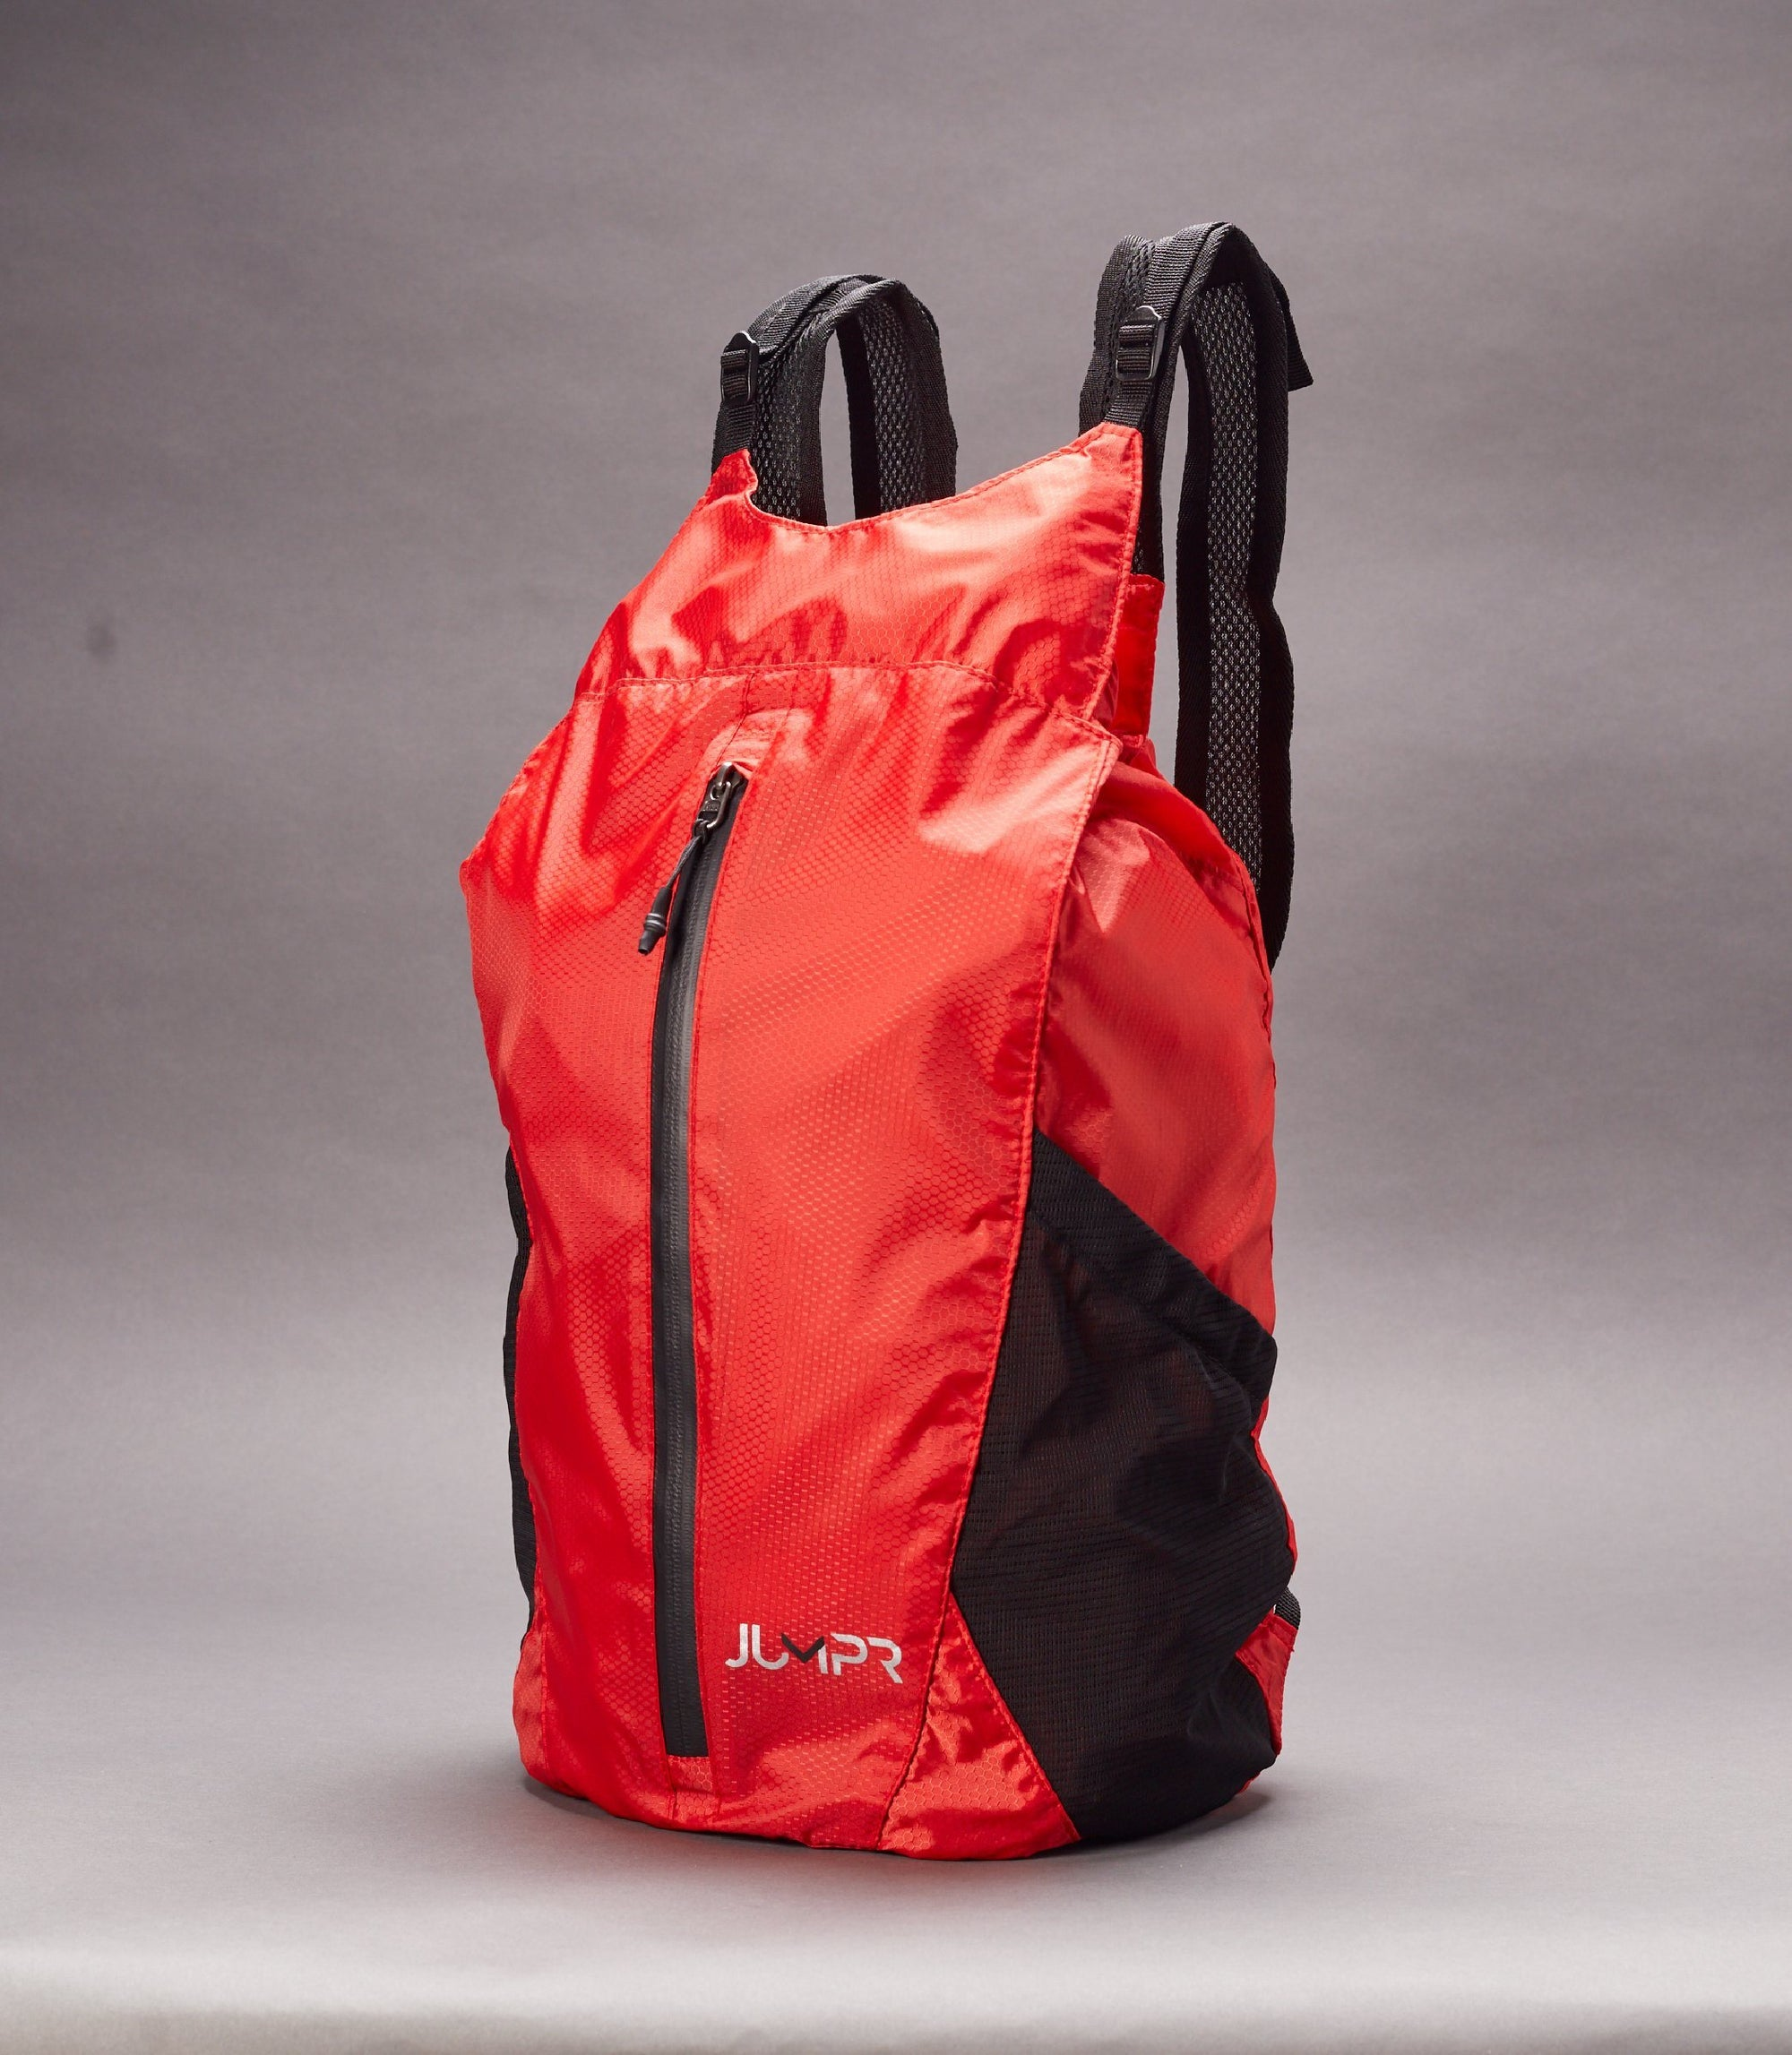 Travel - Jumpr 24L Packable Daypack